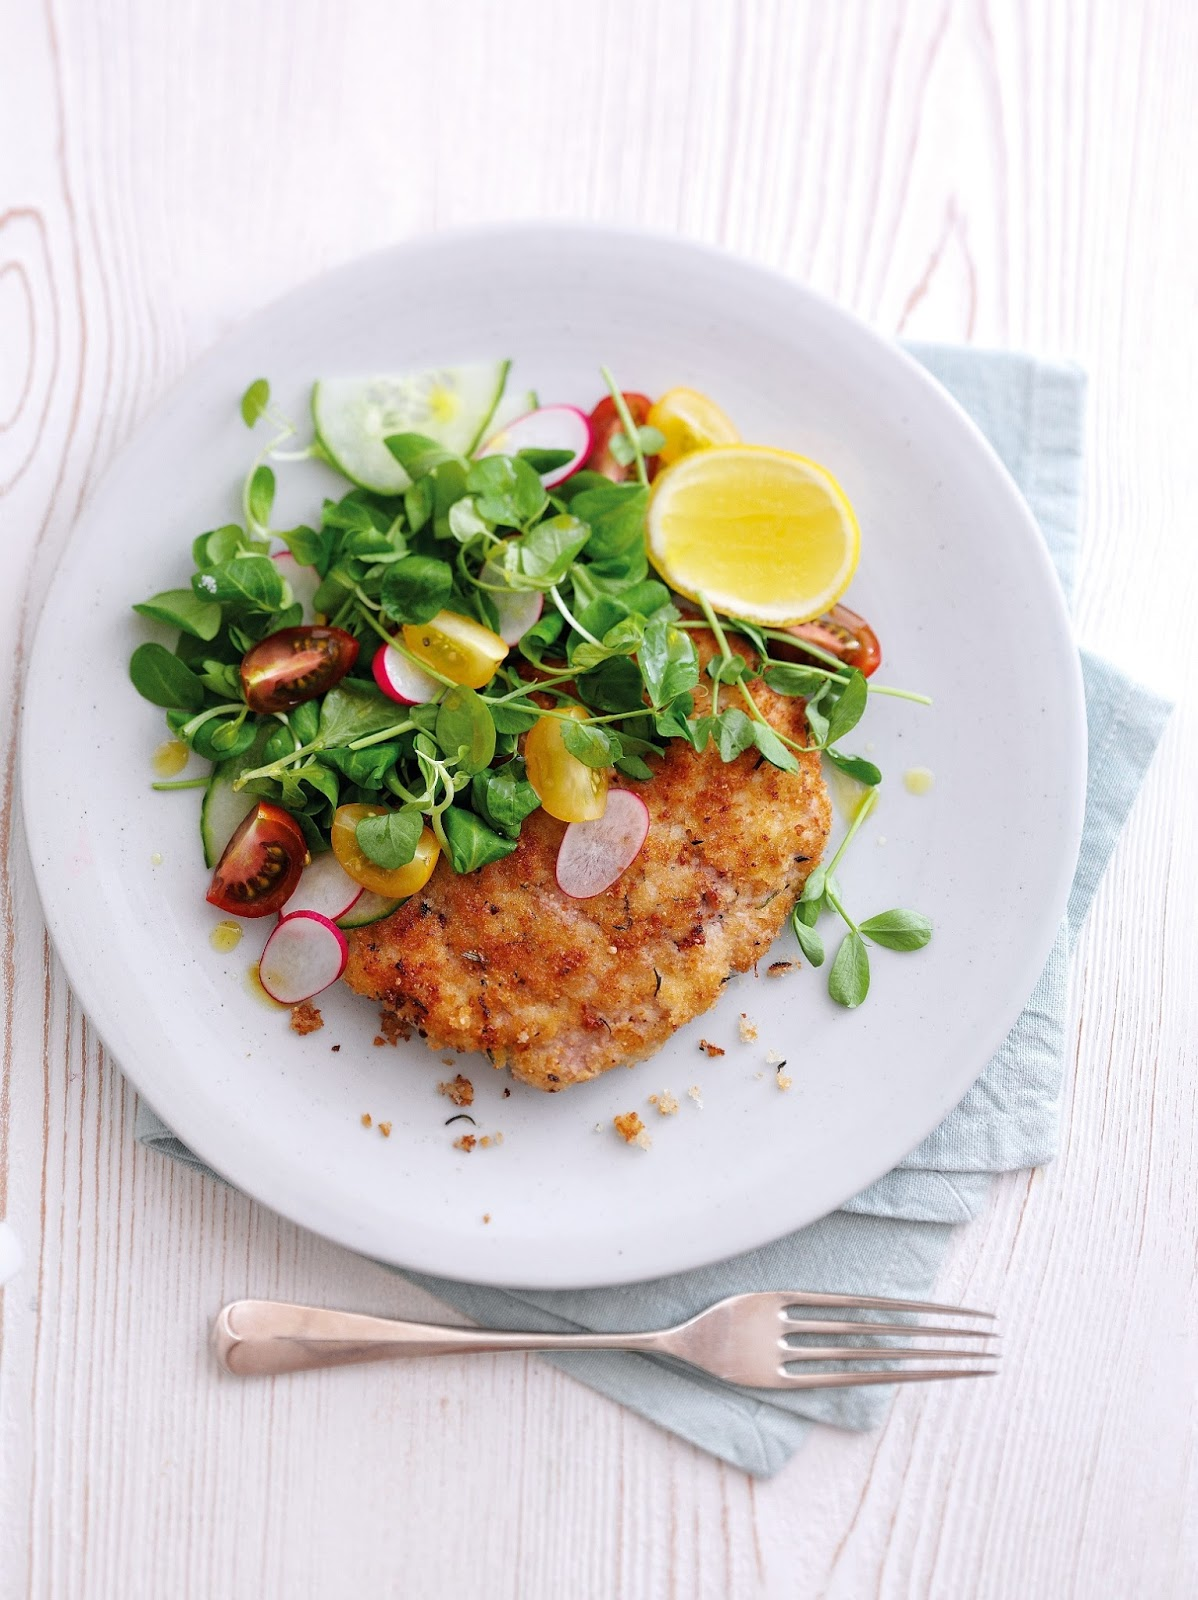 Pork Escalopes With Lemon, Garlic And Rosemary